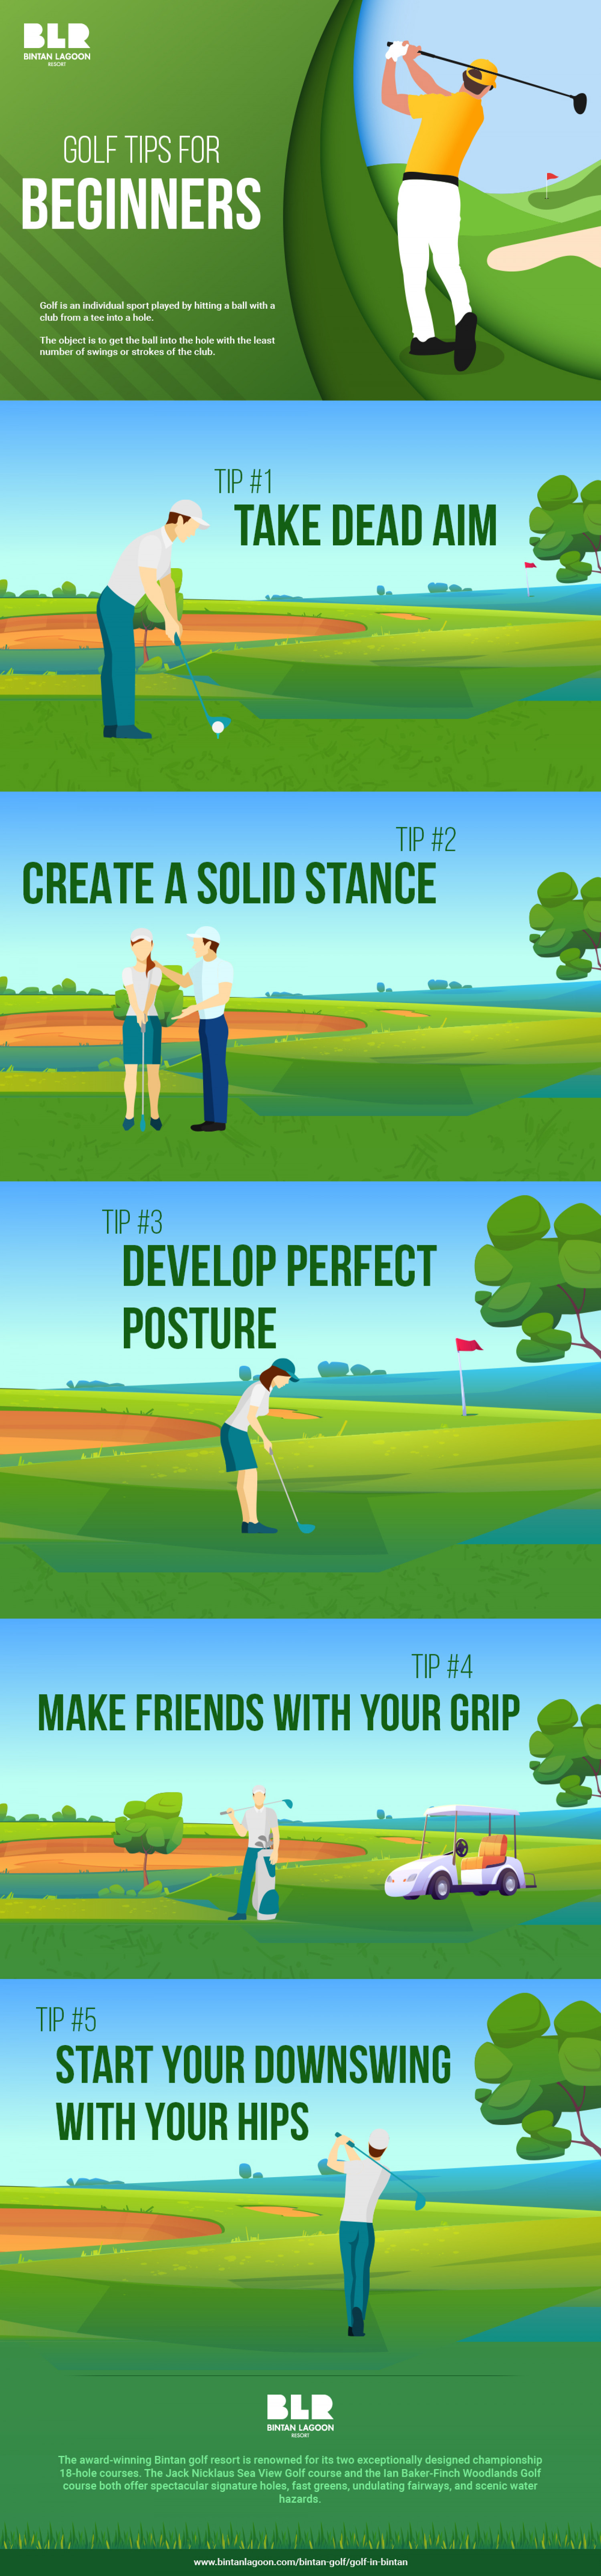 Golf Tips for Beginners Infographic